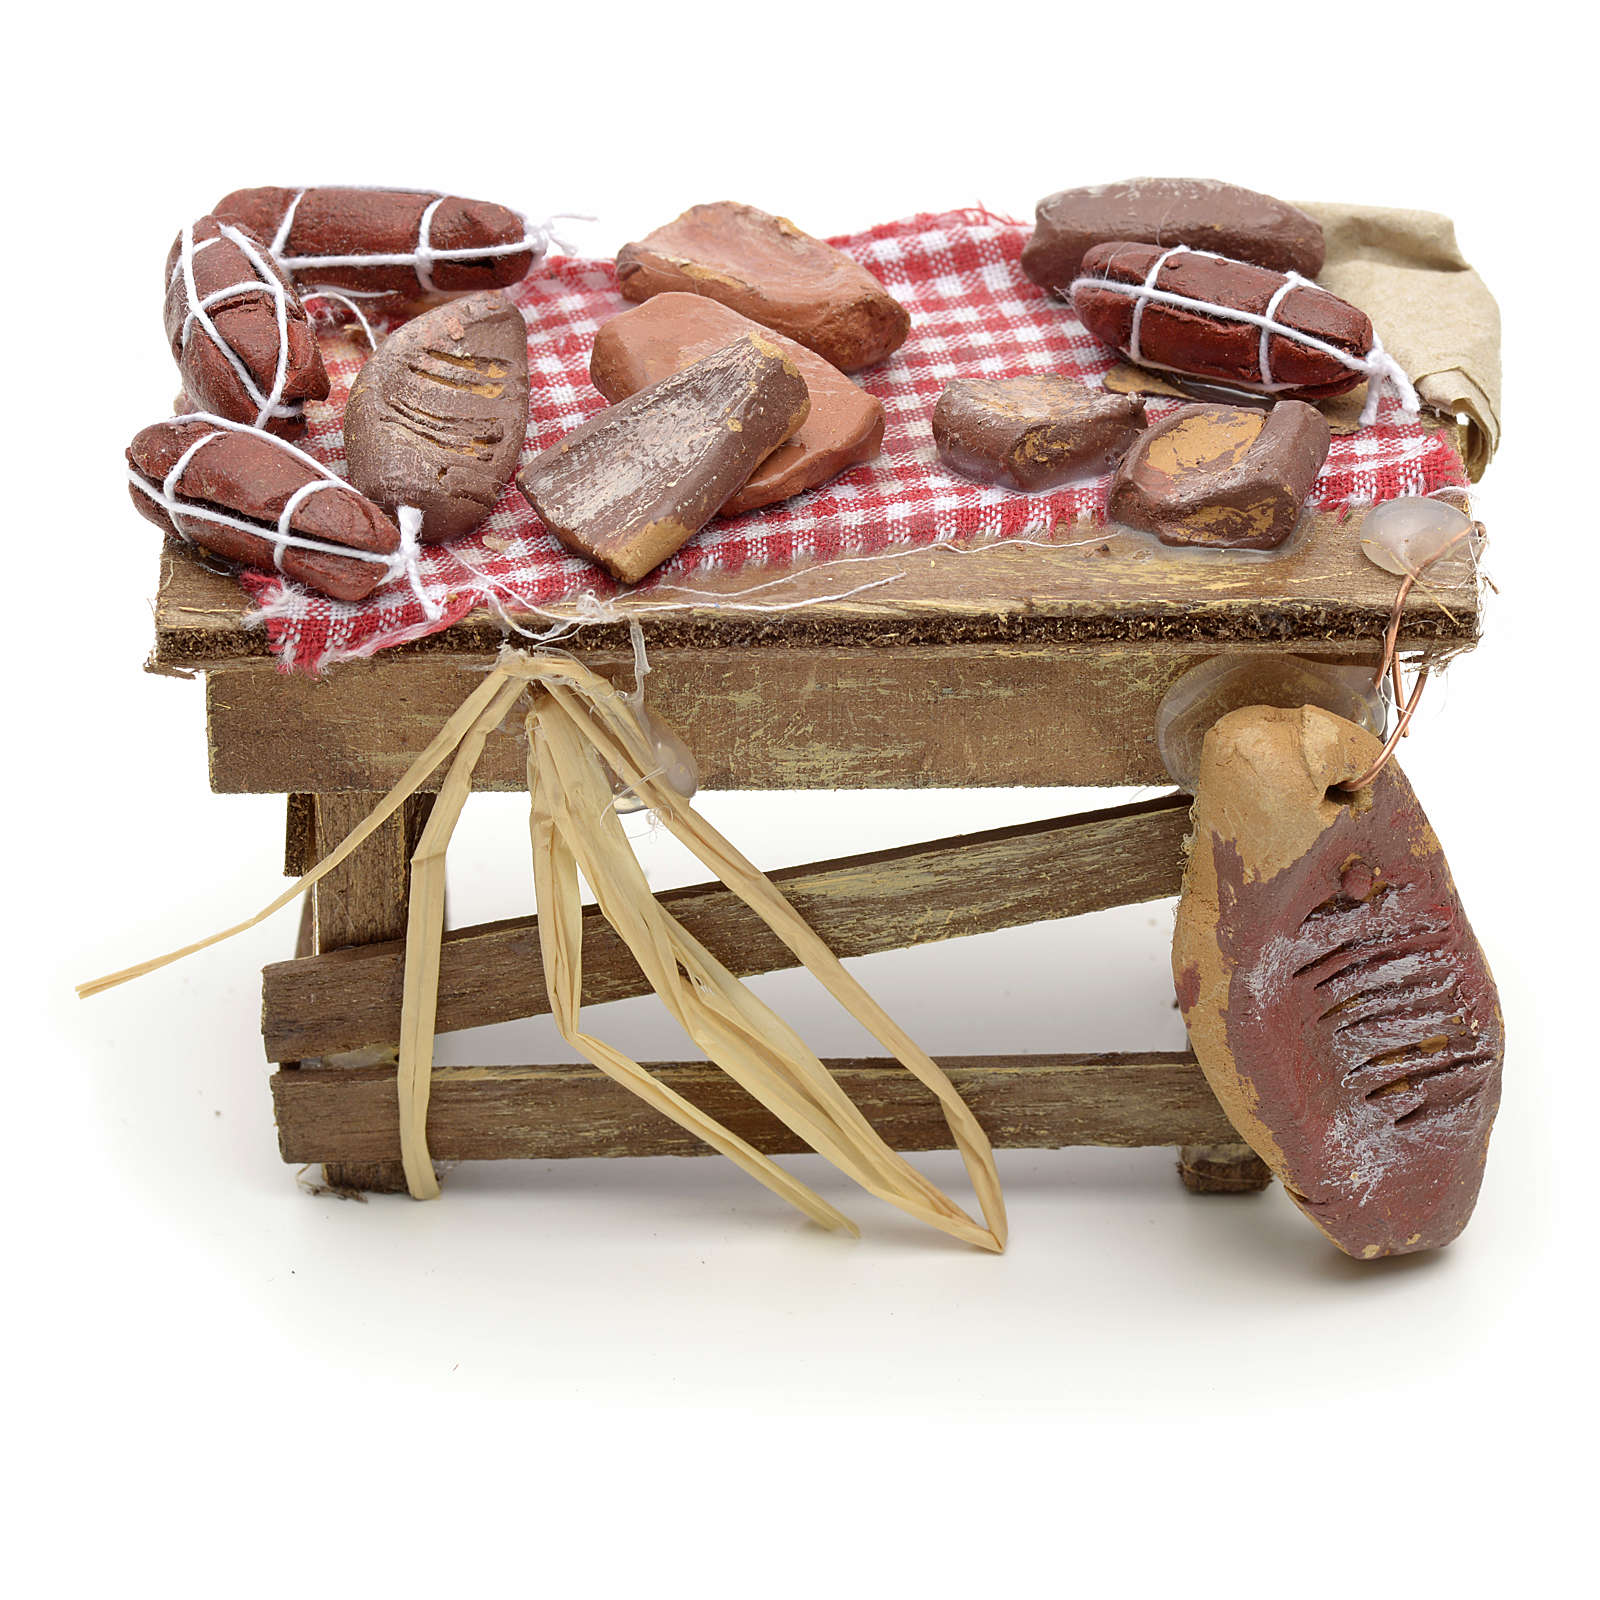 Neapolitan Nativity scene accessory, meat table 4